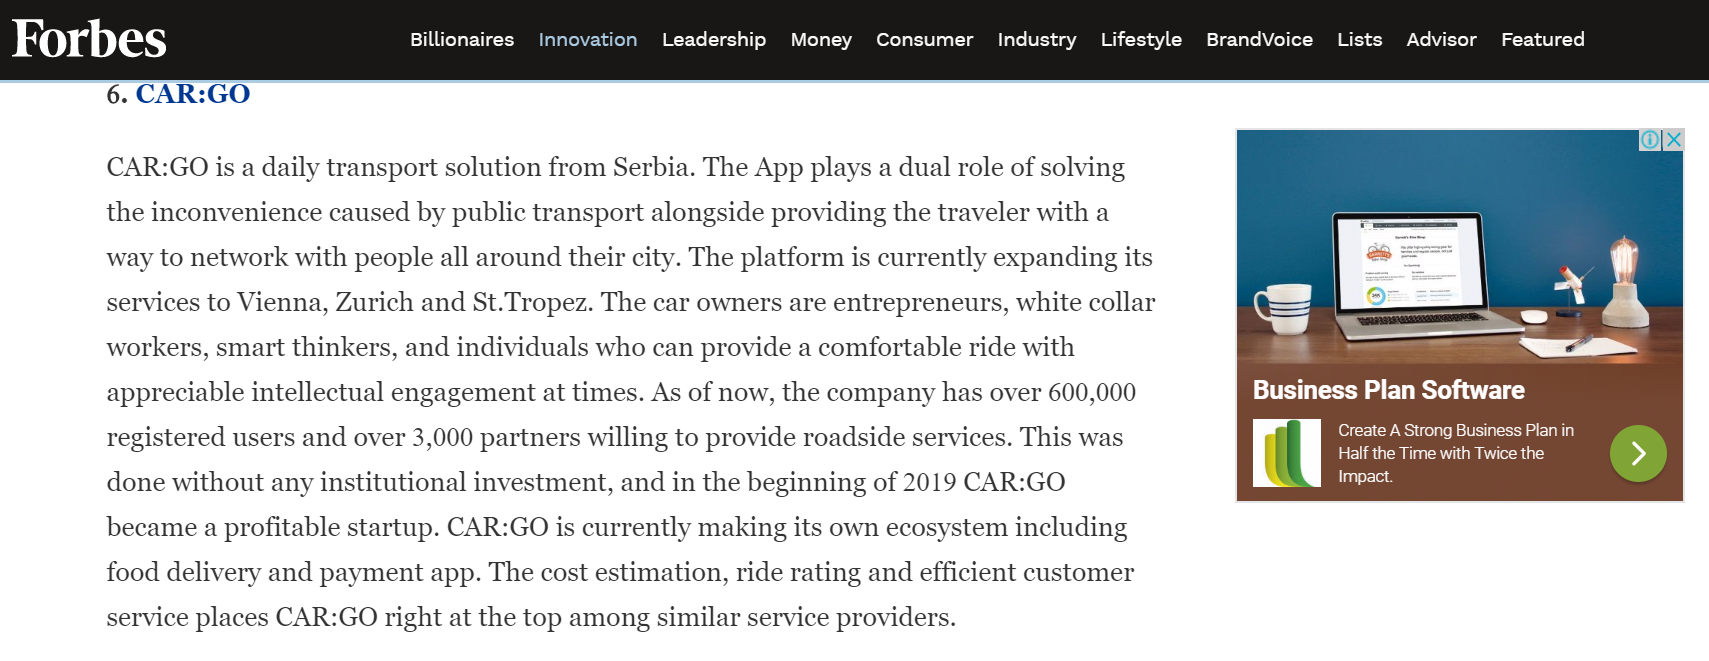 Forbes ranks ride-sharing Car:Go in the top 10 disruptive